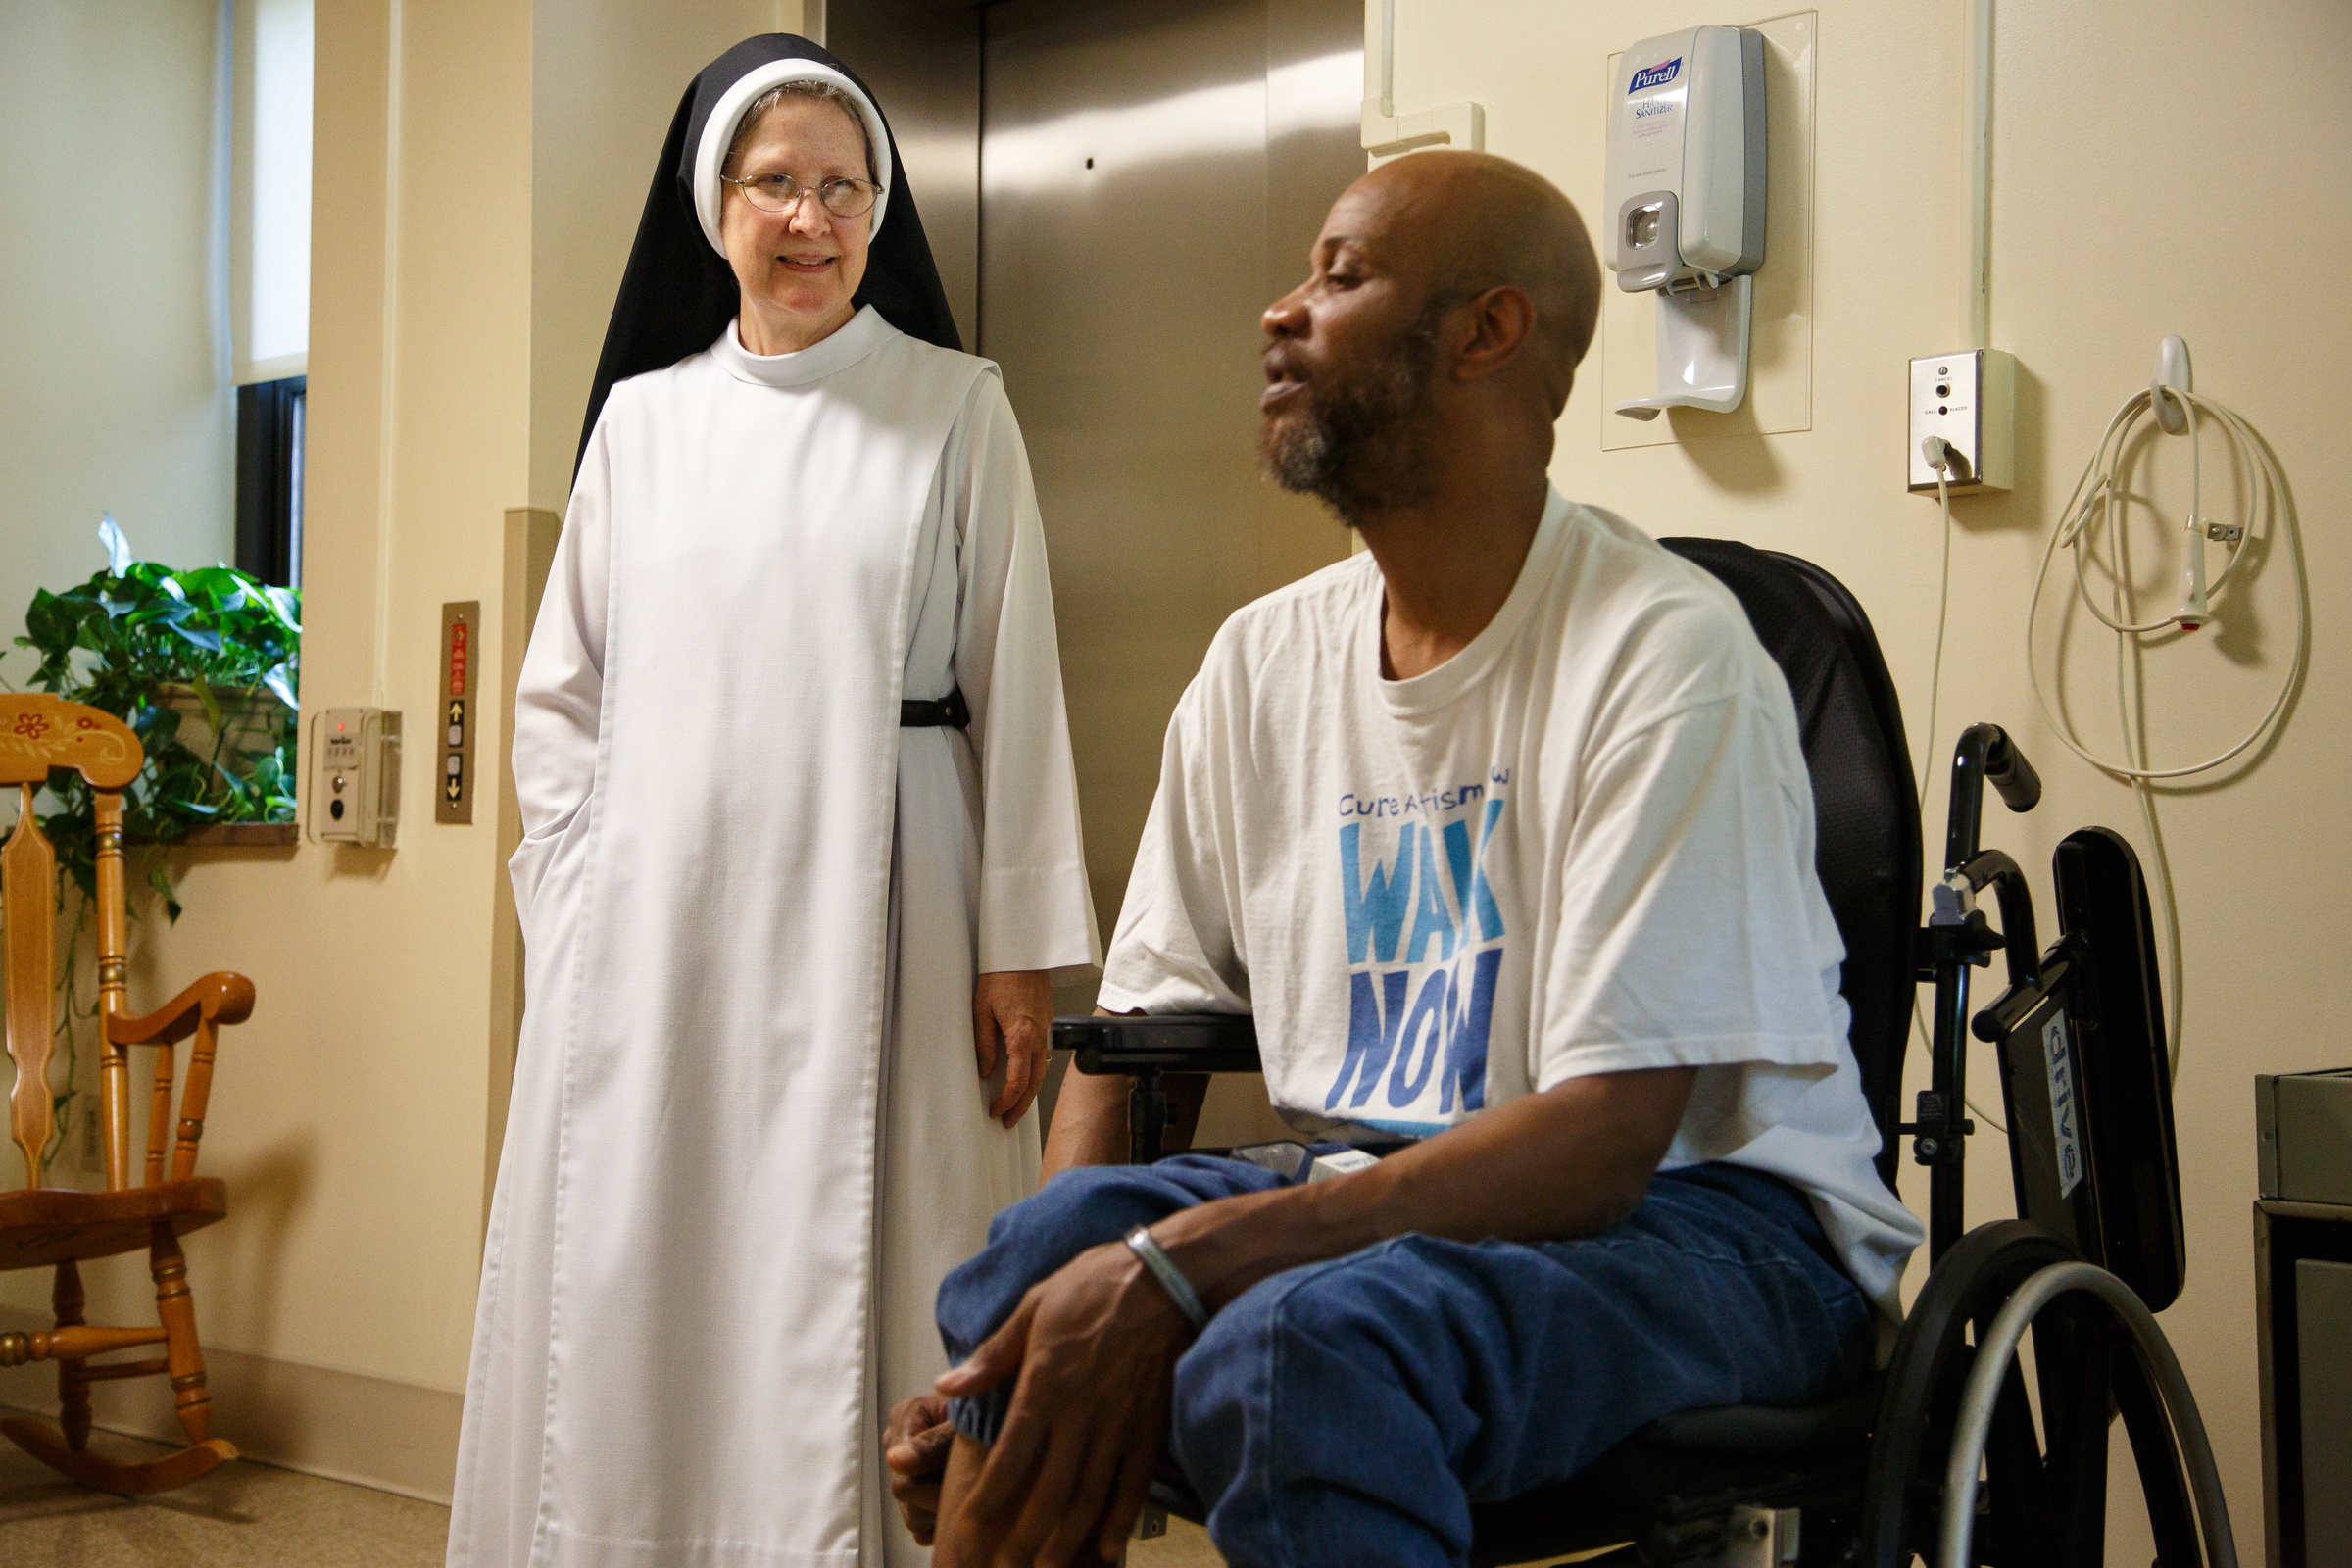 Sister Mary DePaul, left, talks with patient Saleem Muhammed, center, at Sacred Heart Home in Northeast Philadelphia, Monday, Sept. 11, 2017. The nuns take care of terminally ill patients at the Sacred Heart Home. JESSICA GRIFFIN / Staff Photographer